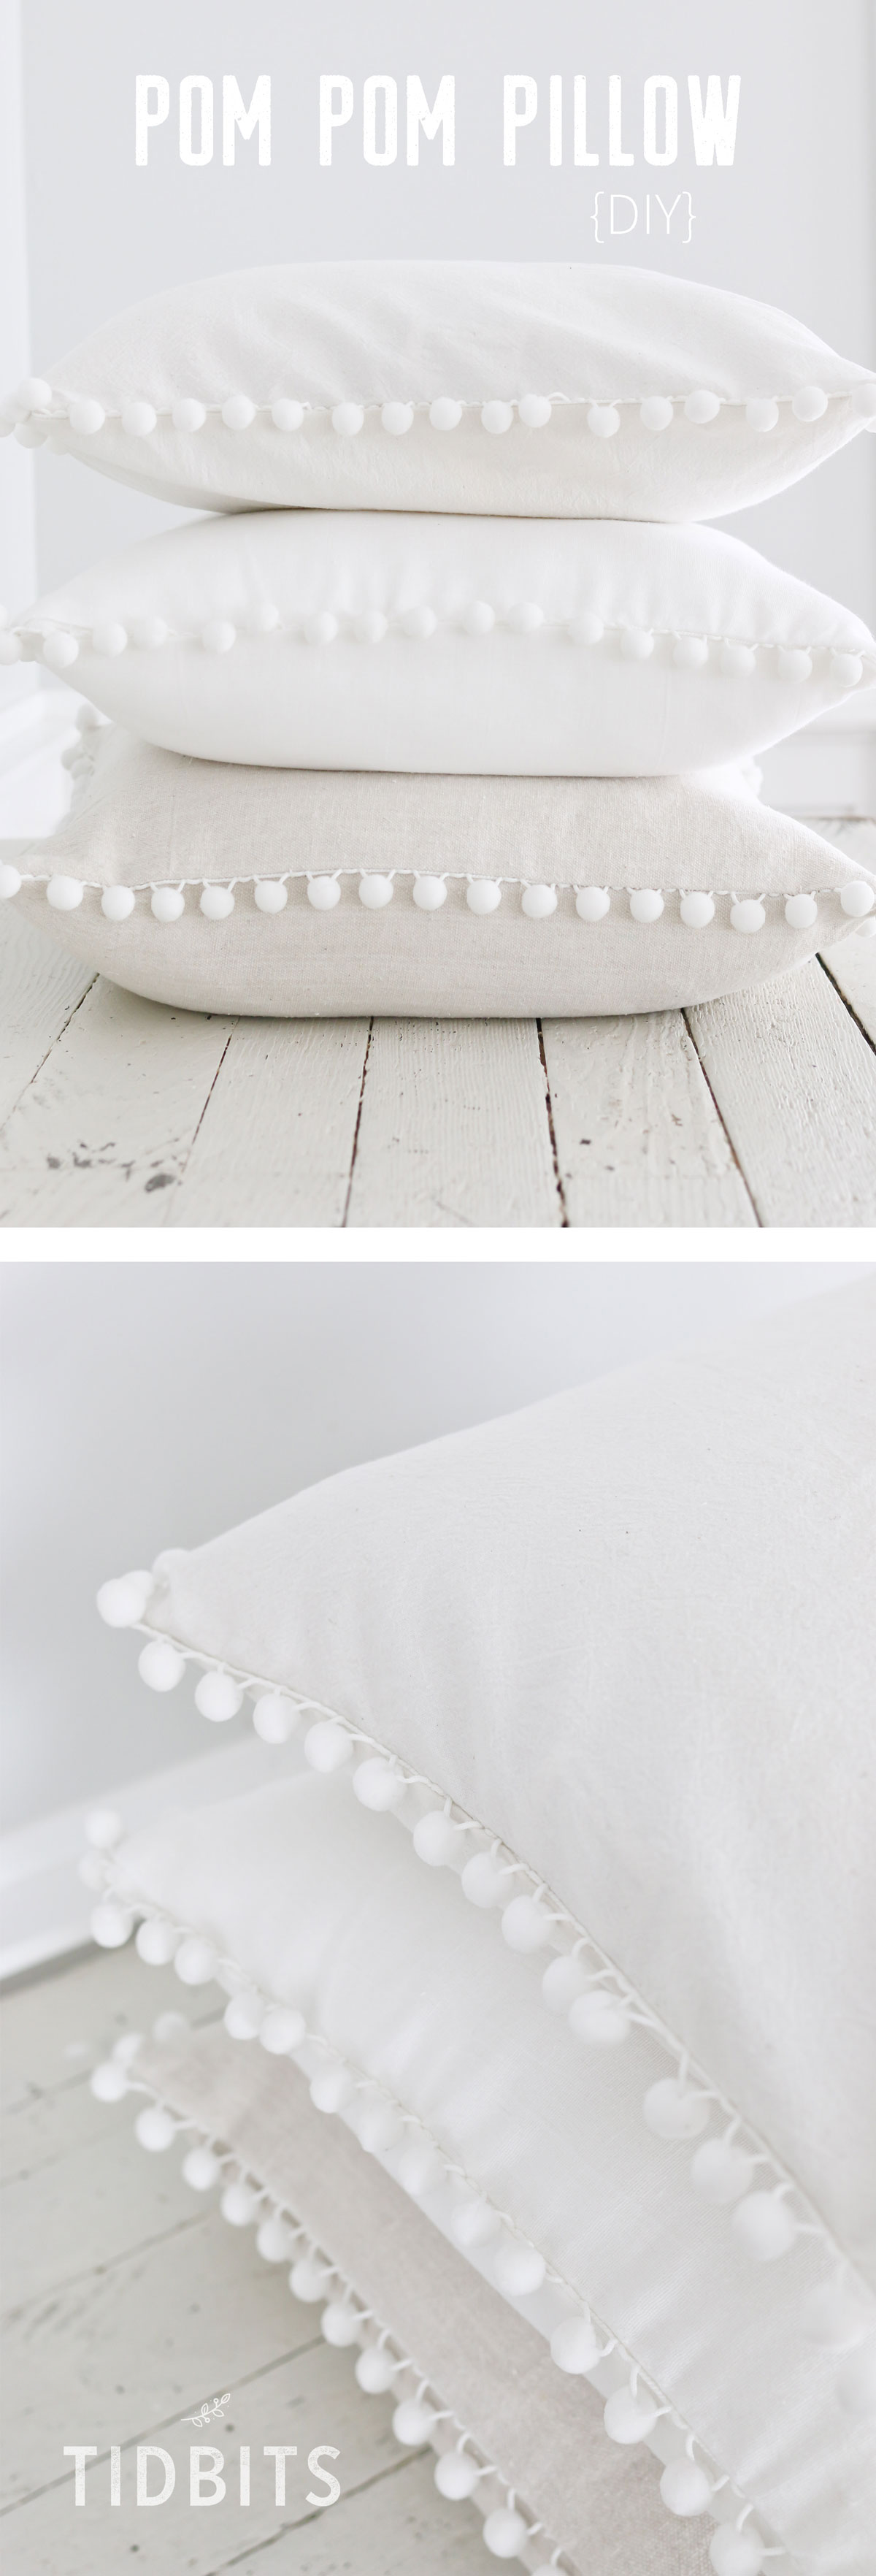 DIY Pom Pom Pillow - fun and easy sewing project!